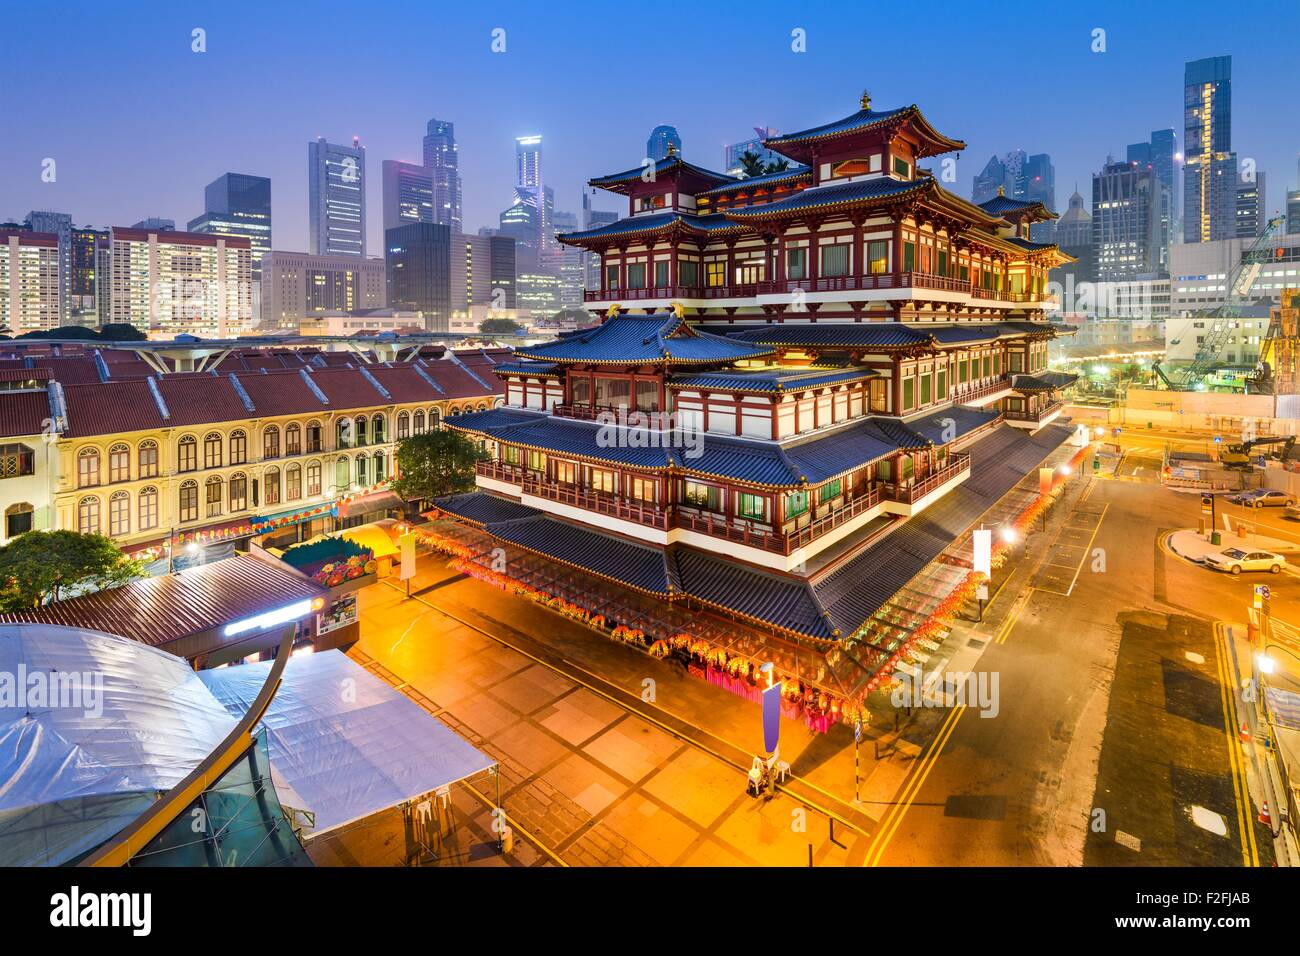 Singapore at the Buddha Tooth Relic Temple. - Stock Image